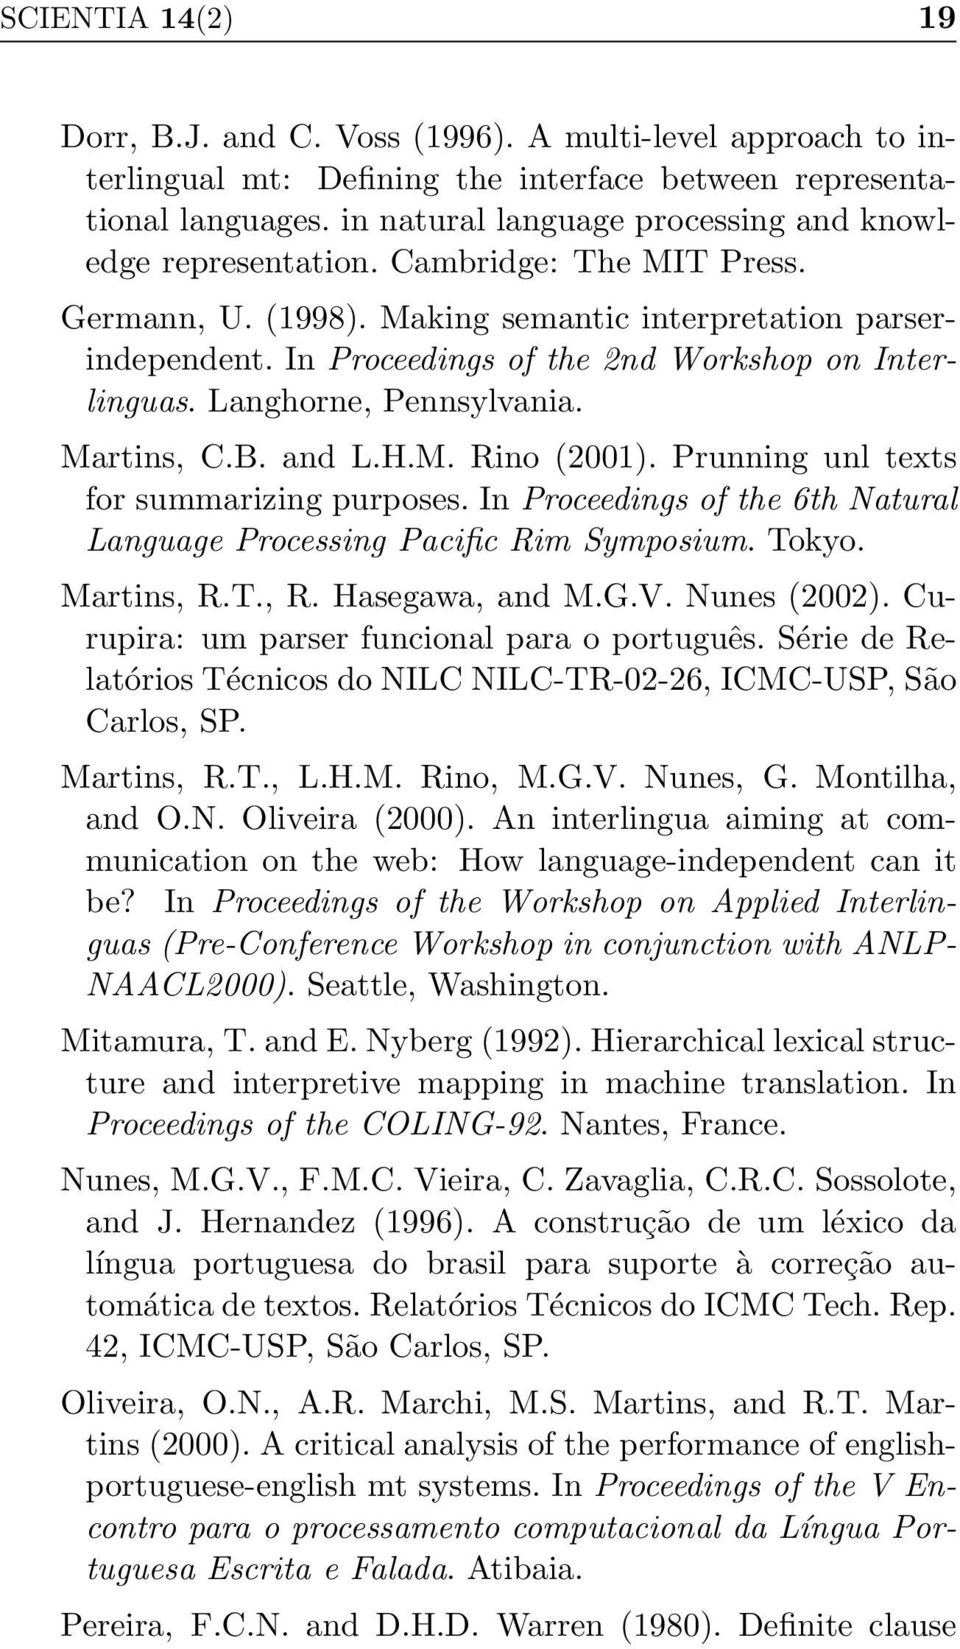 In Proceedings of the 2nd Workshop on Interlinguas. Langhorne, Pennsylvania. Martins, C.B. and L.H.M. Rino (2001). Prunning unl texts for summarizing purposes.